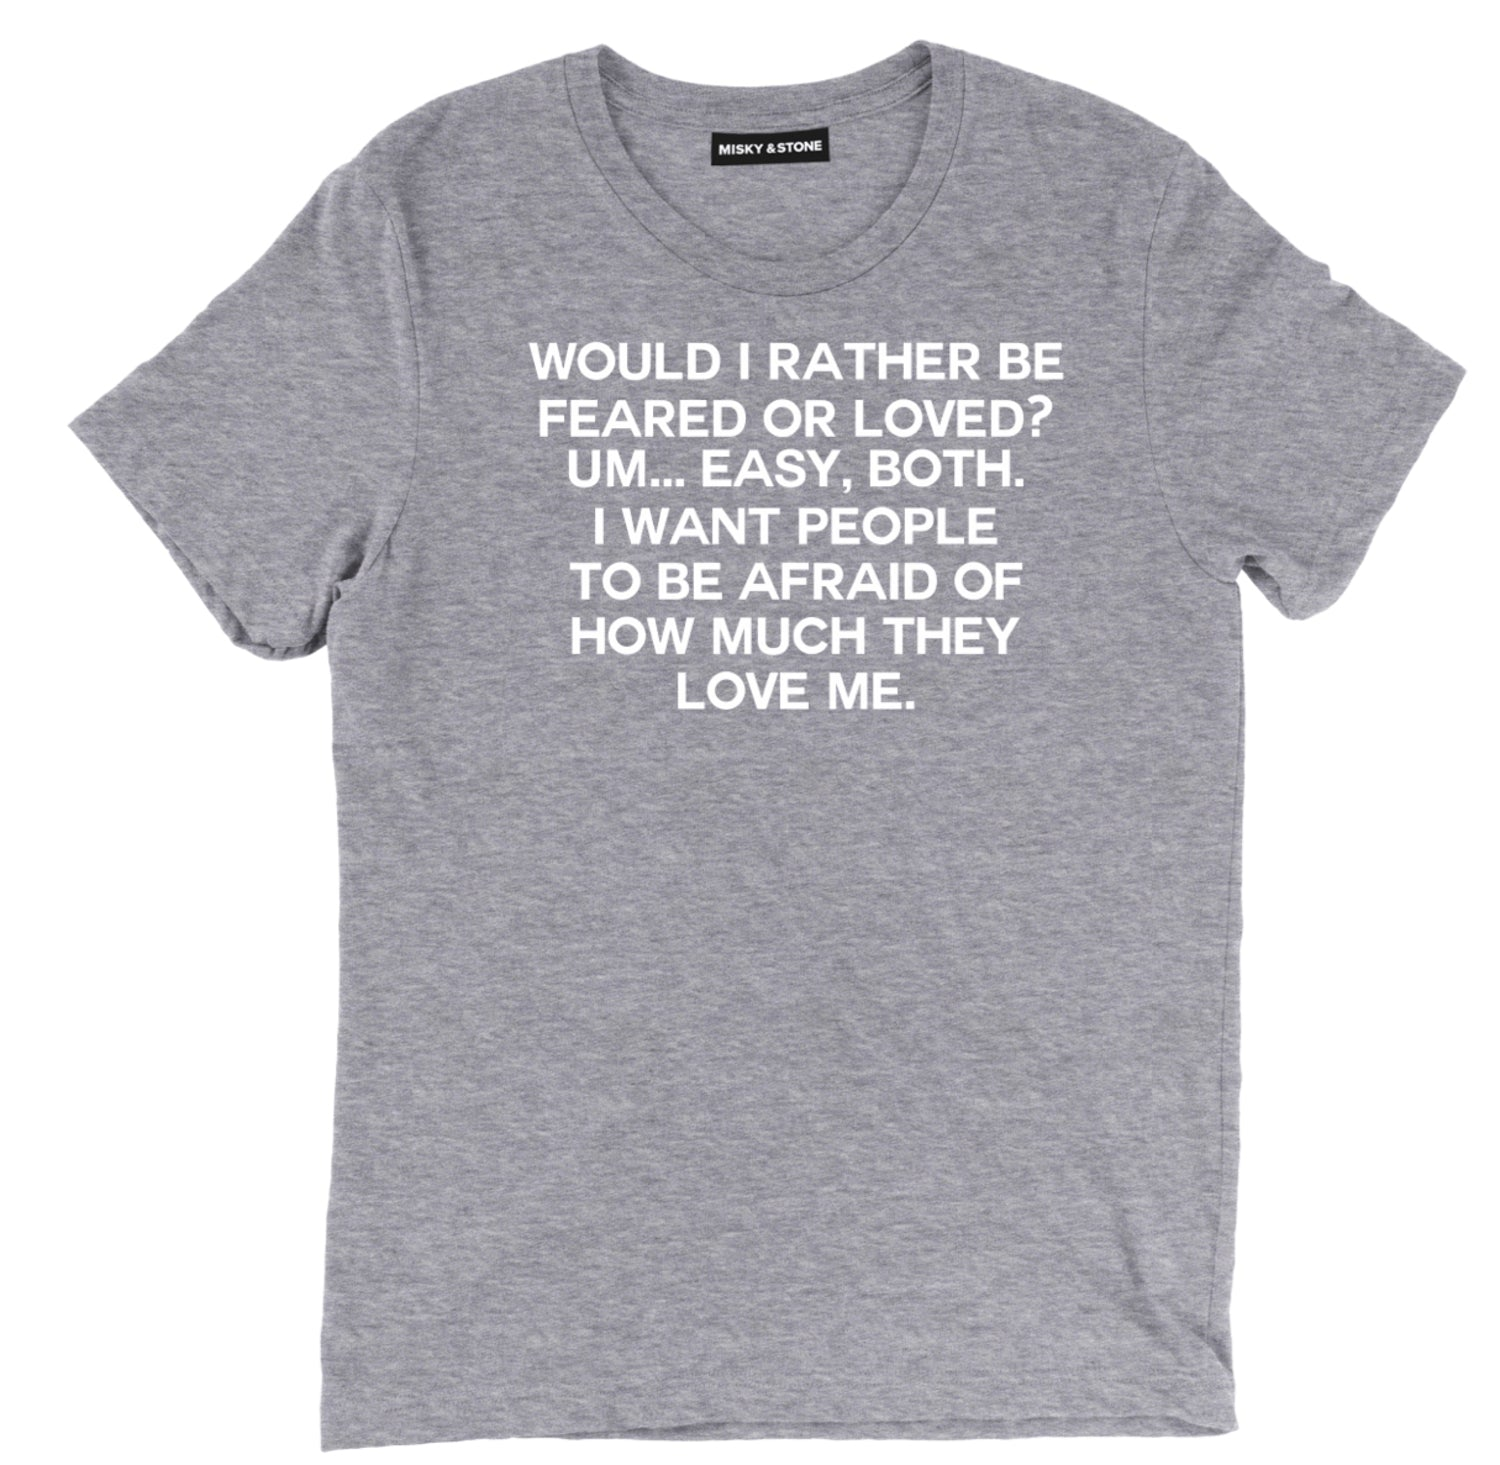 would rather be feared or loved t shirt, funny the office feared or loved tee,  michael scott shirt, michael scott t shirt